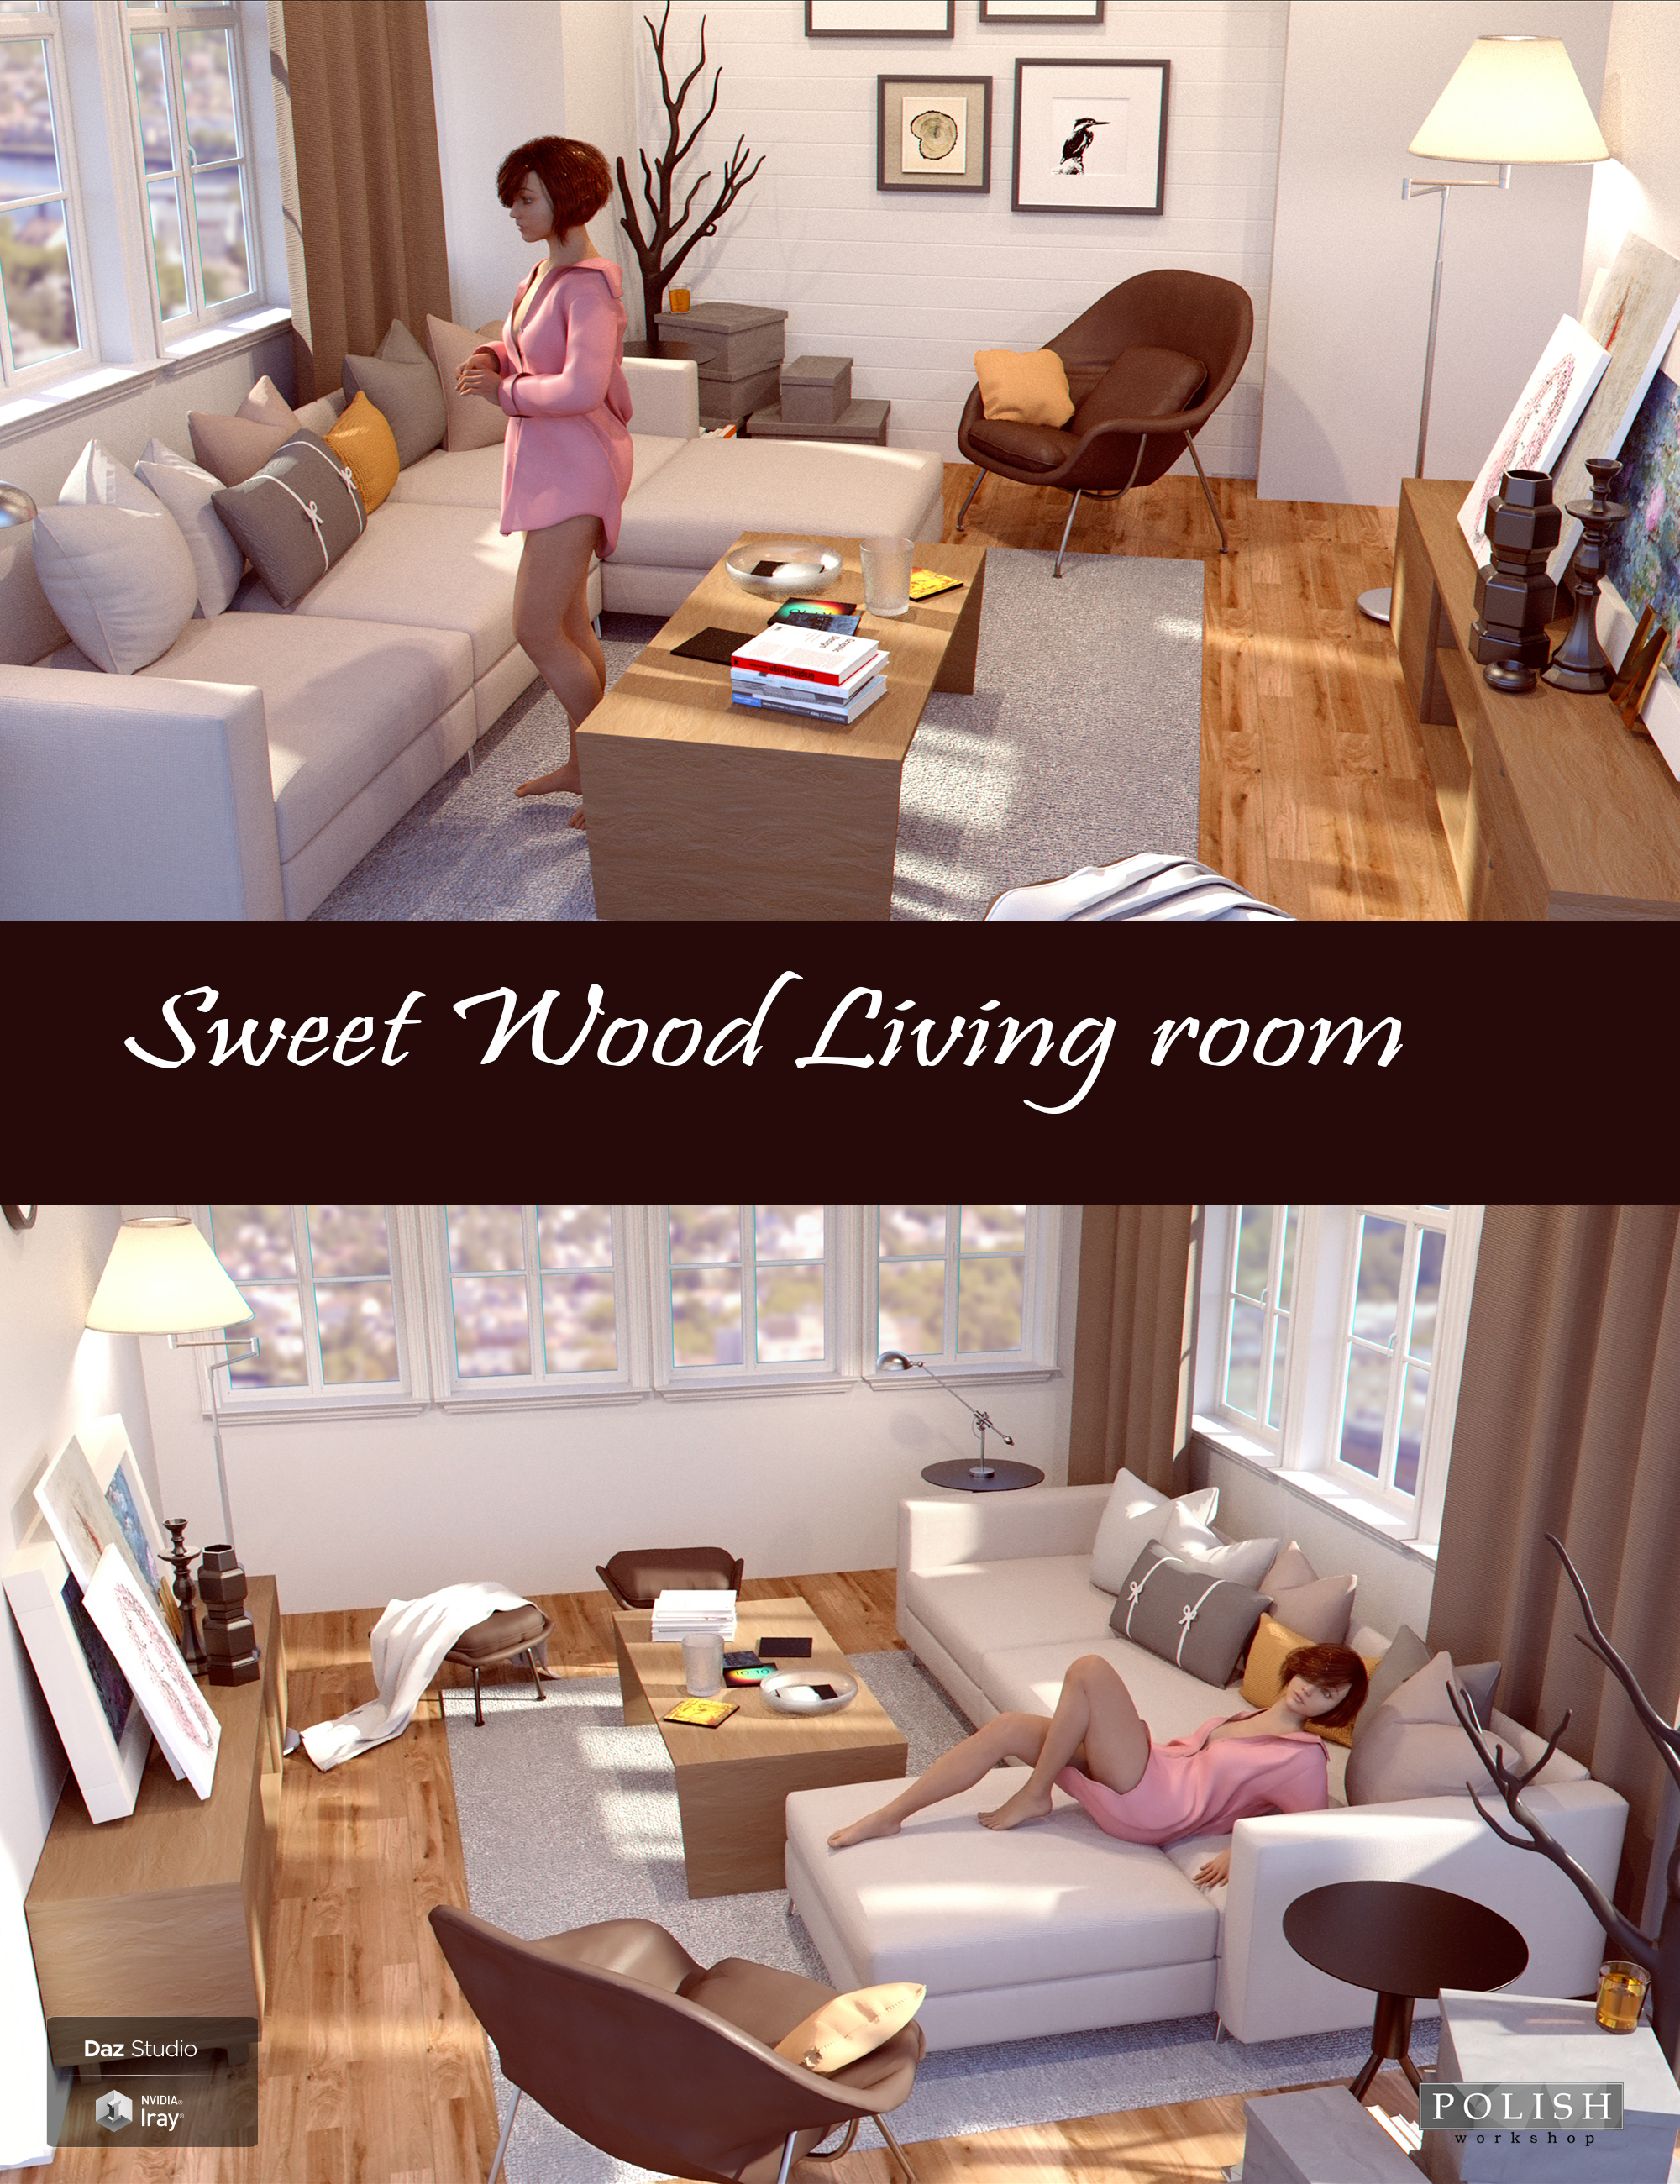 Sweet Wood Living Room by: Polish, 3D Models by Daz 3D